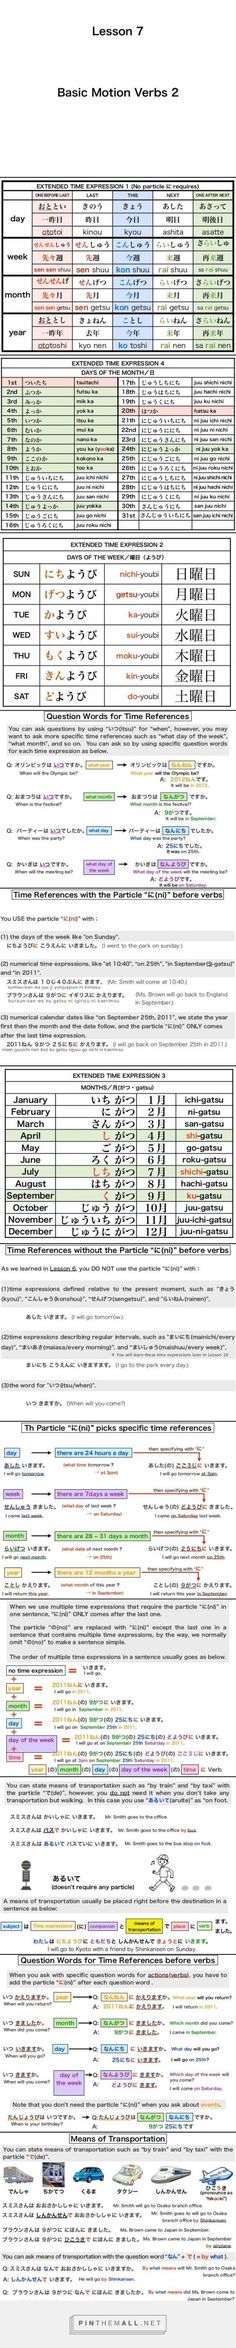 japanese motion verbs 2 - time expression: